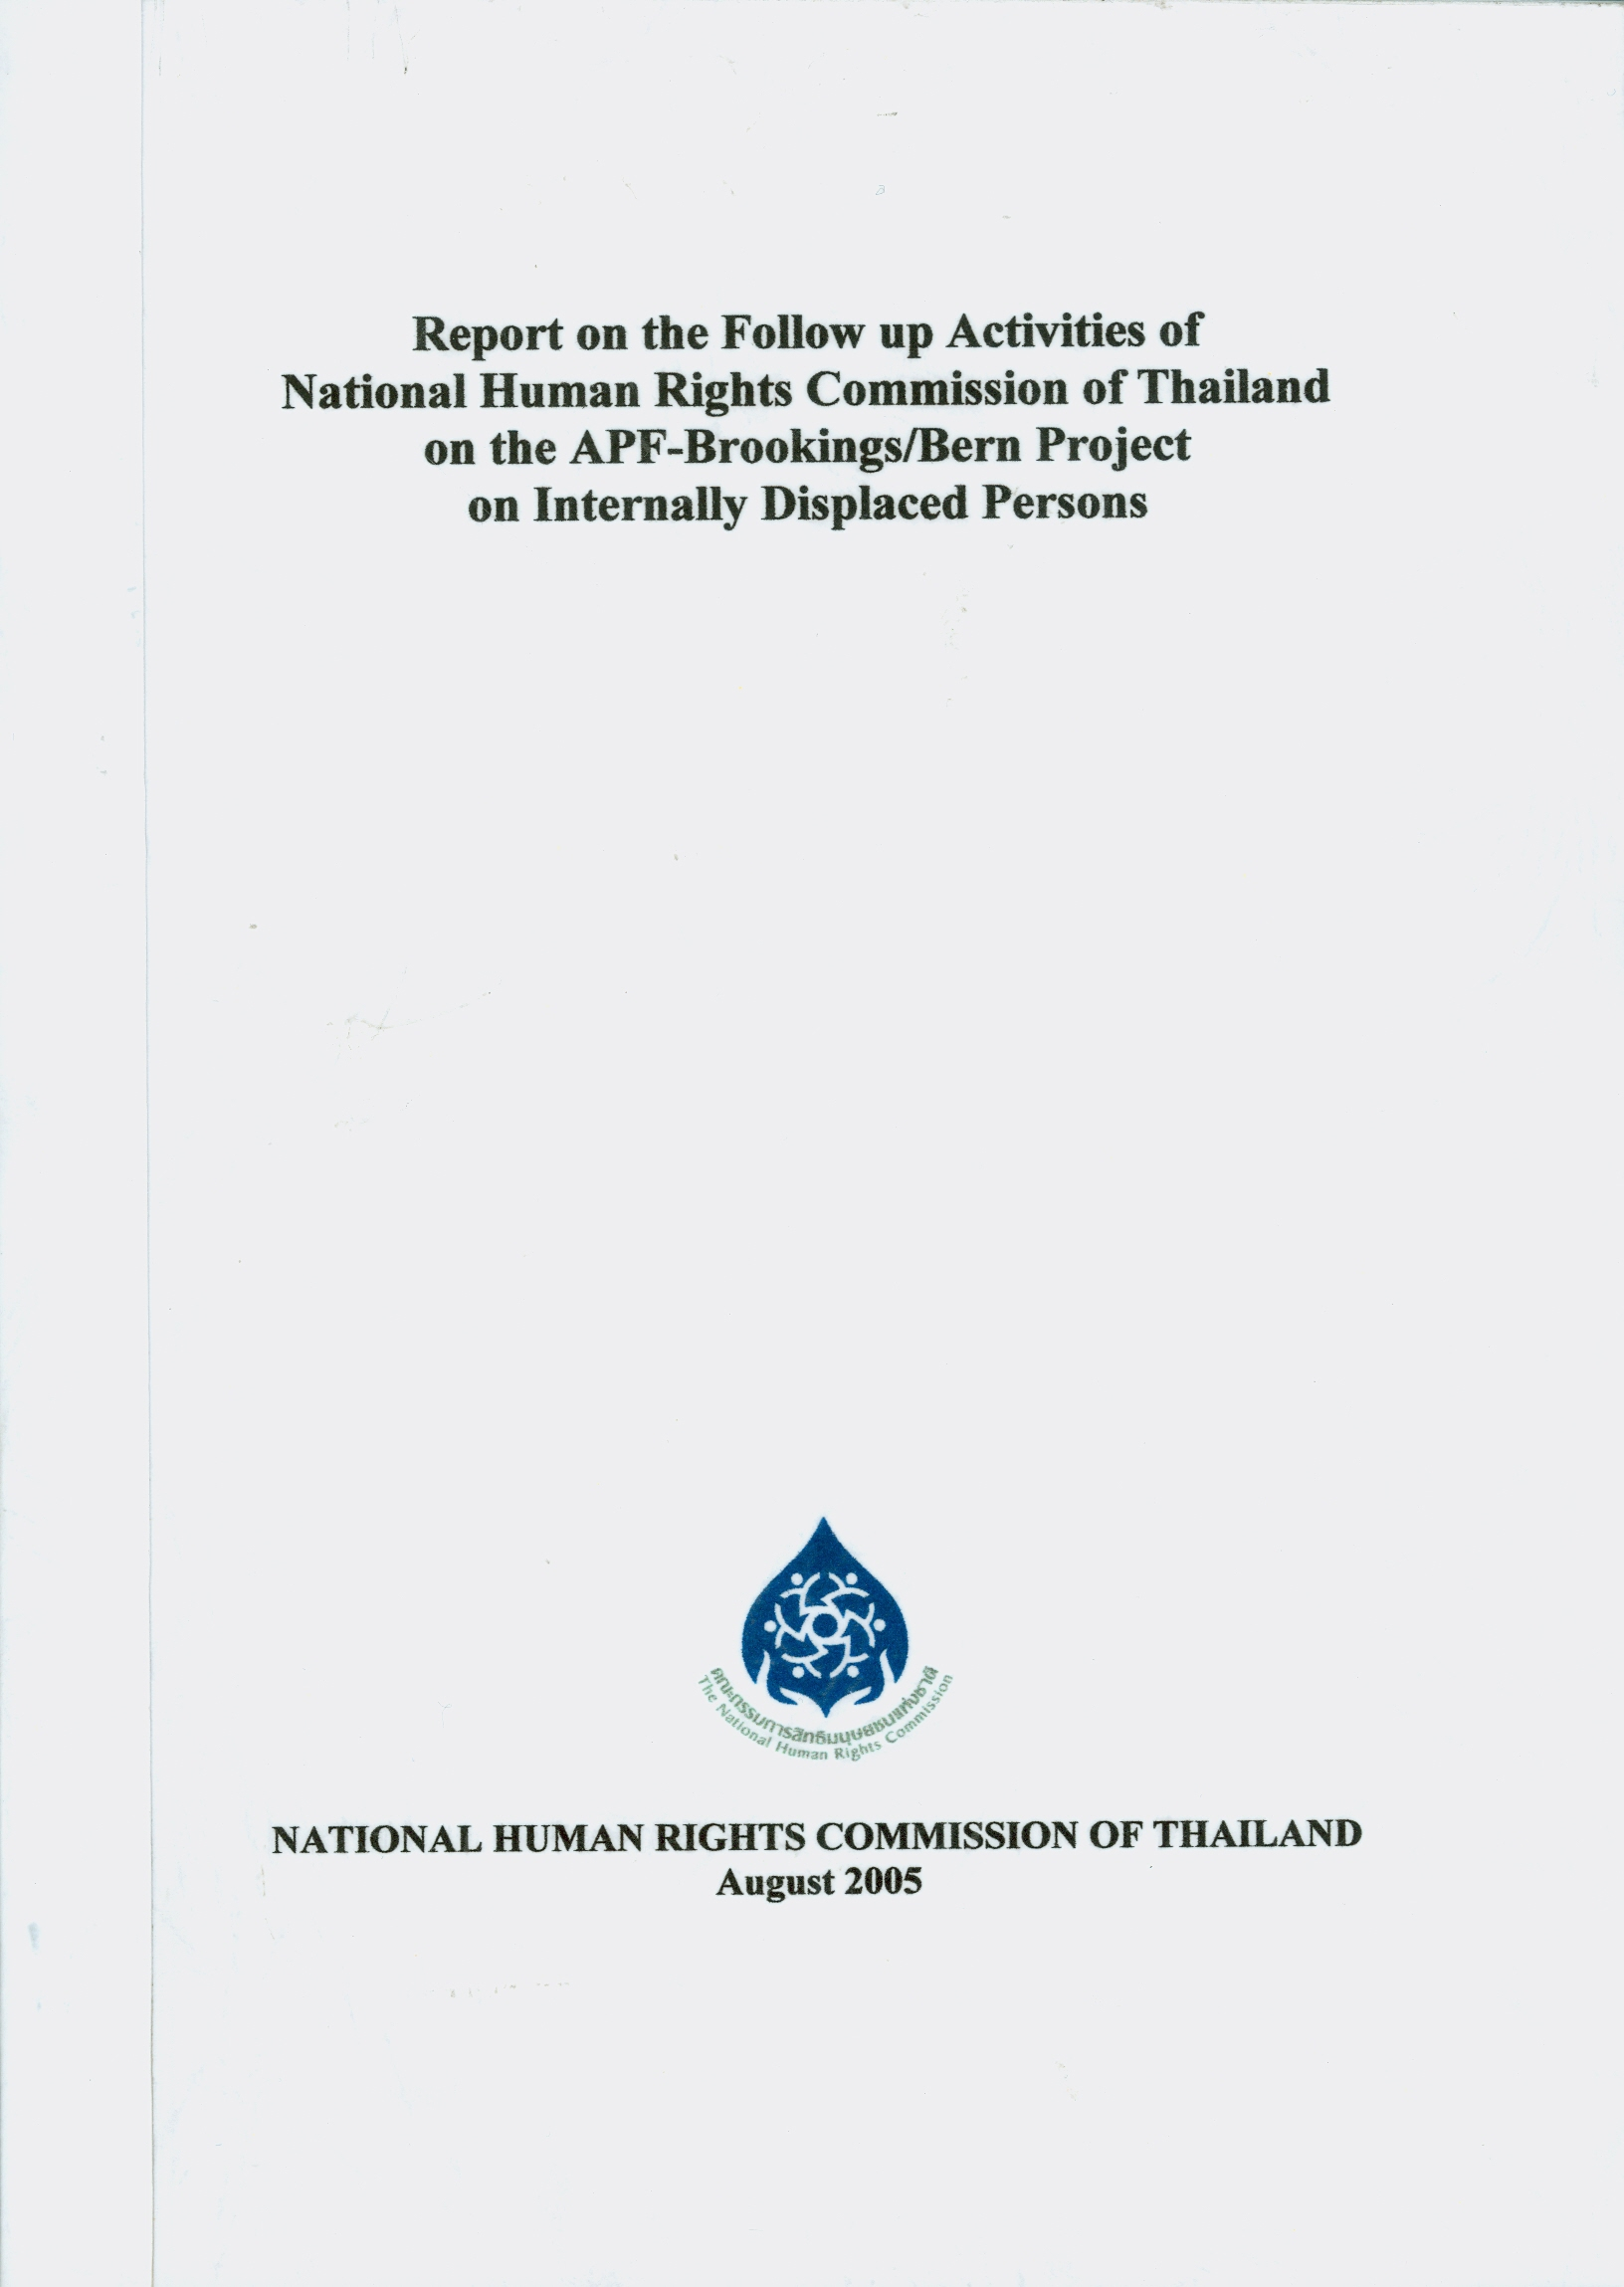 Report on the follow up activities of National Human Rights Commission of Thailand on the APF-Brookings/Bern project on internally displaced persons /National Human Rights Commission of Thailand